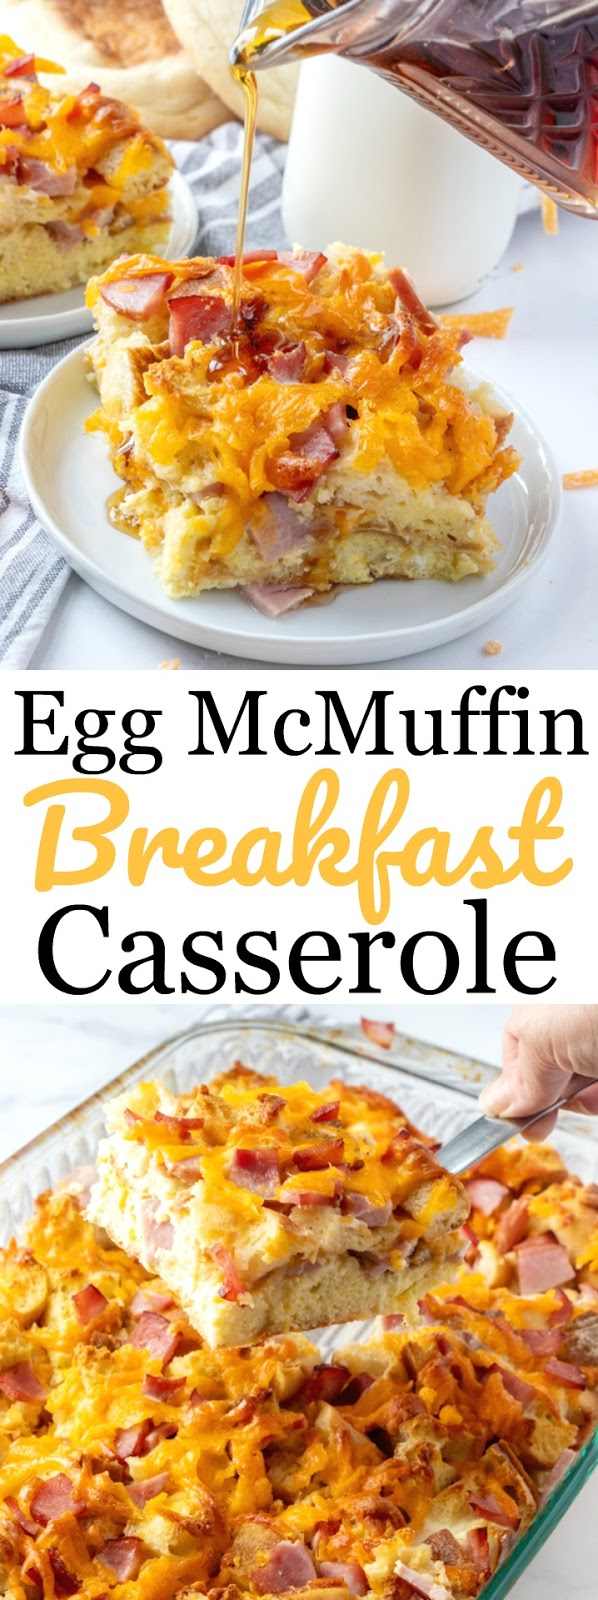 This delicious breakfast casserole has all the ingredients of McDonald's Egg McMuffins combined together and baked! Use Canadian bacon, sausage or regular bacon, and any cheese you prefer! Drizzle maple syrup on top for that delicious sweet and savory flavor combo! Make this for holiday brunch or dinner instead of breakfast!